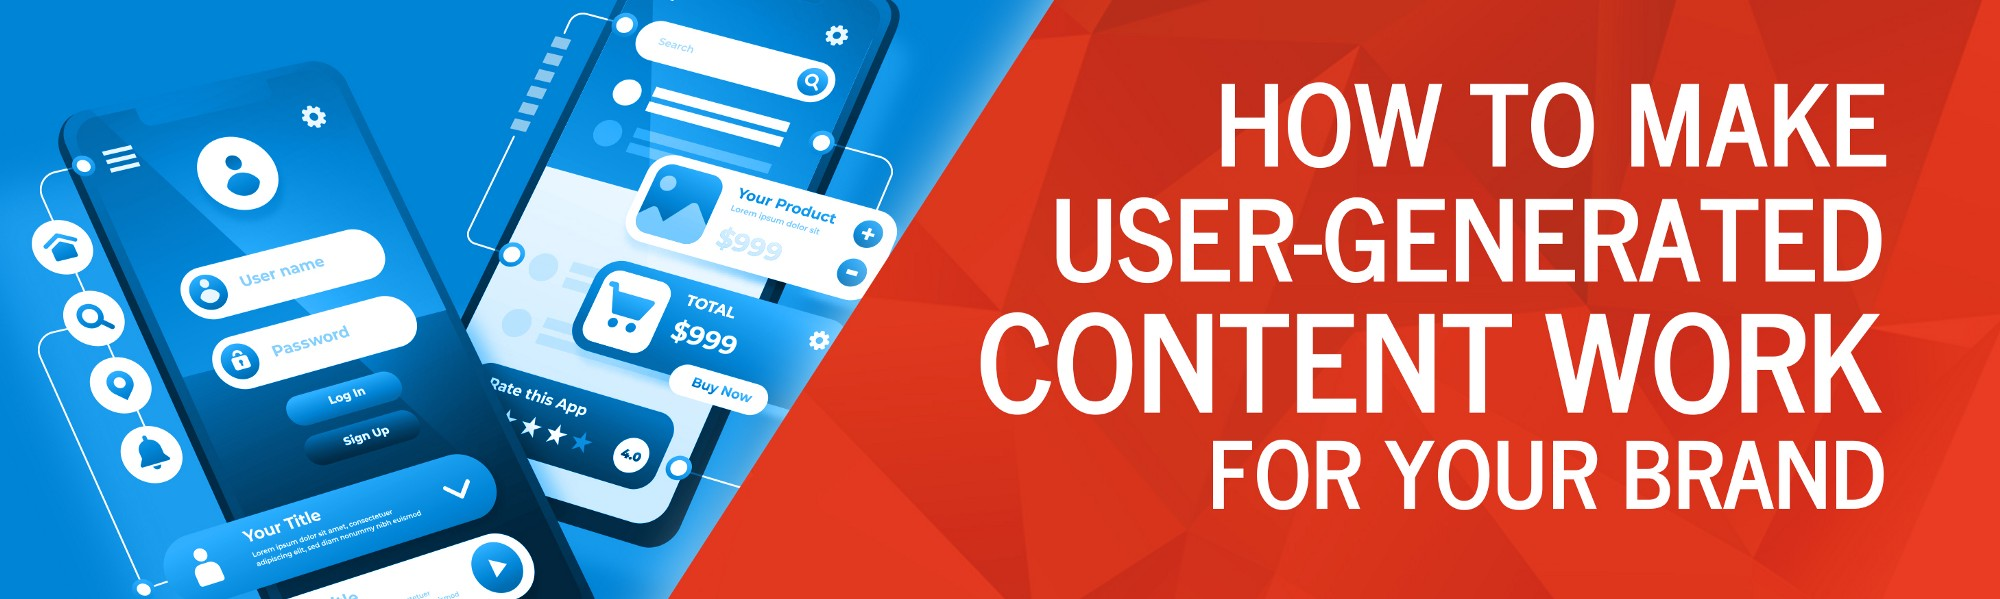 How to Make User-Generated Content Work for Your Brand